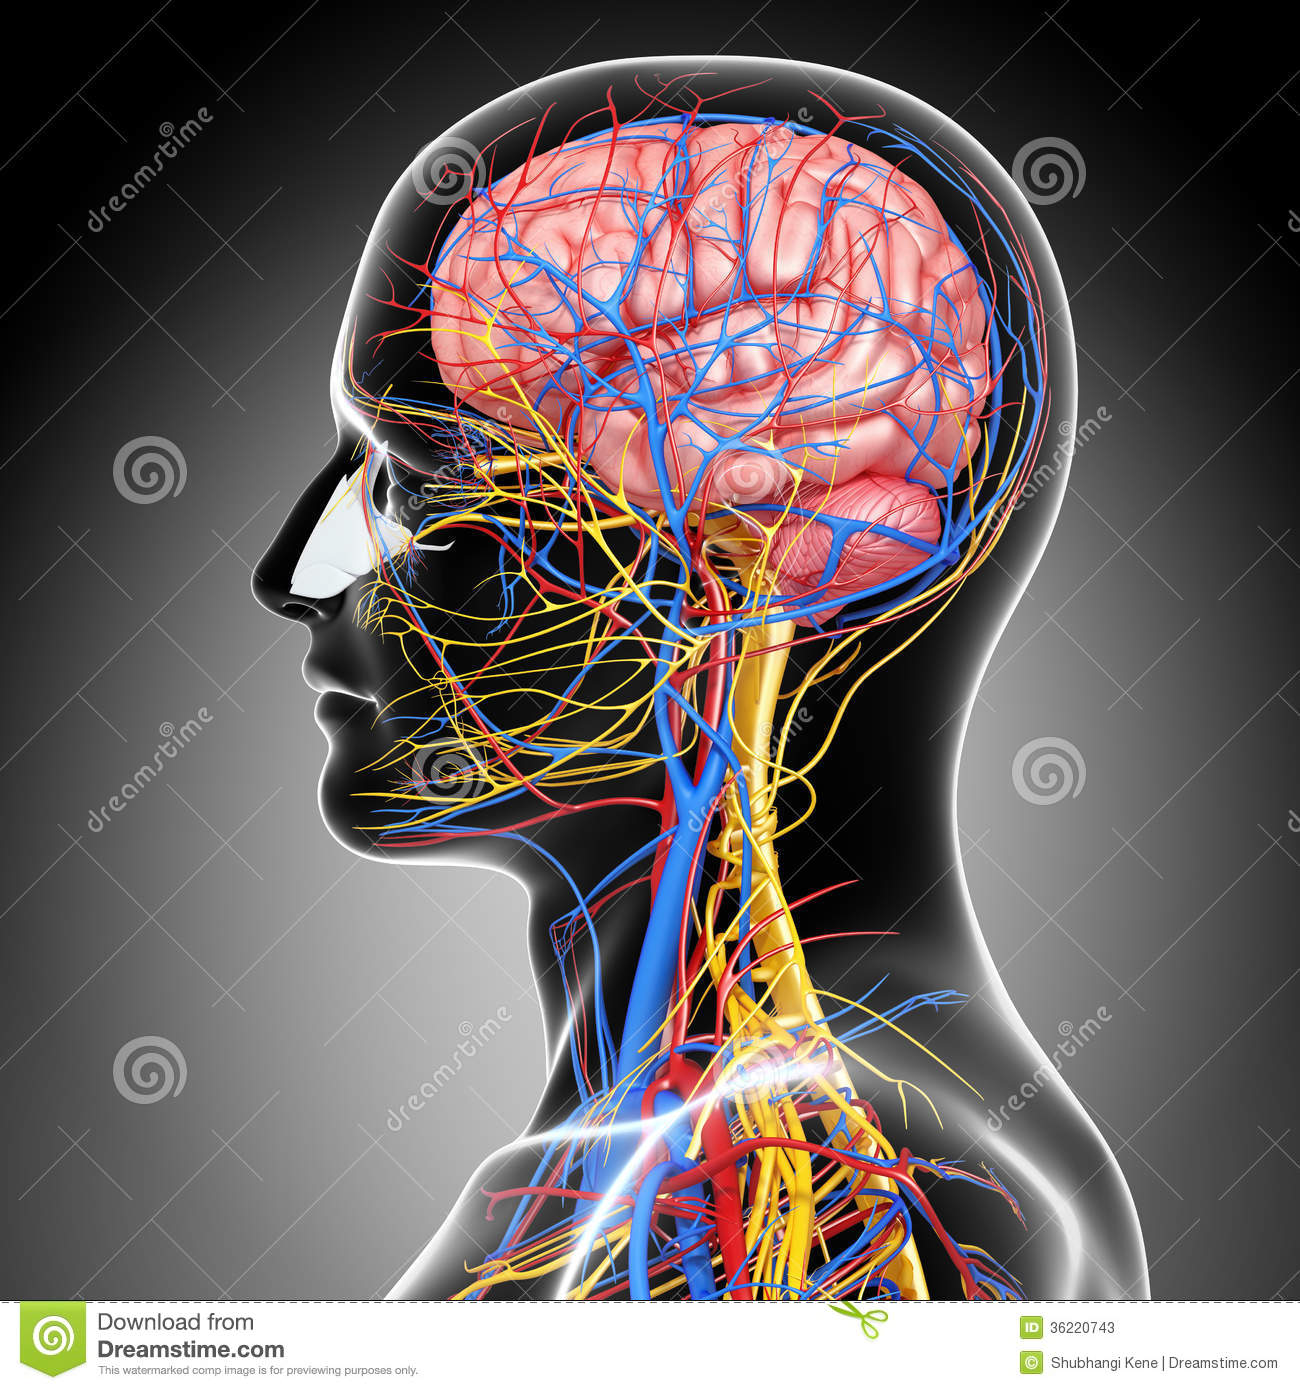 Nervous System Diagram Hebrew moreover D Aad F Fc B A Eb Circuit Blood Vessels also Human Brain Underside View as well Ca C C D A C also Circulatory Nervous System Head D Art Illustration. on human body nervous system diagram